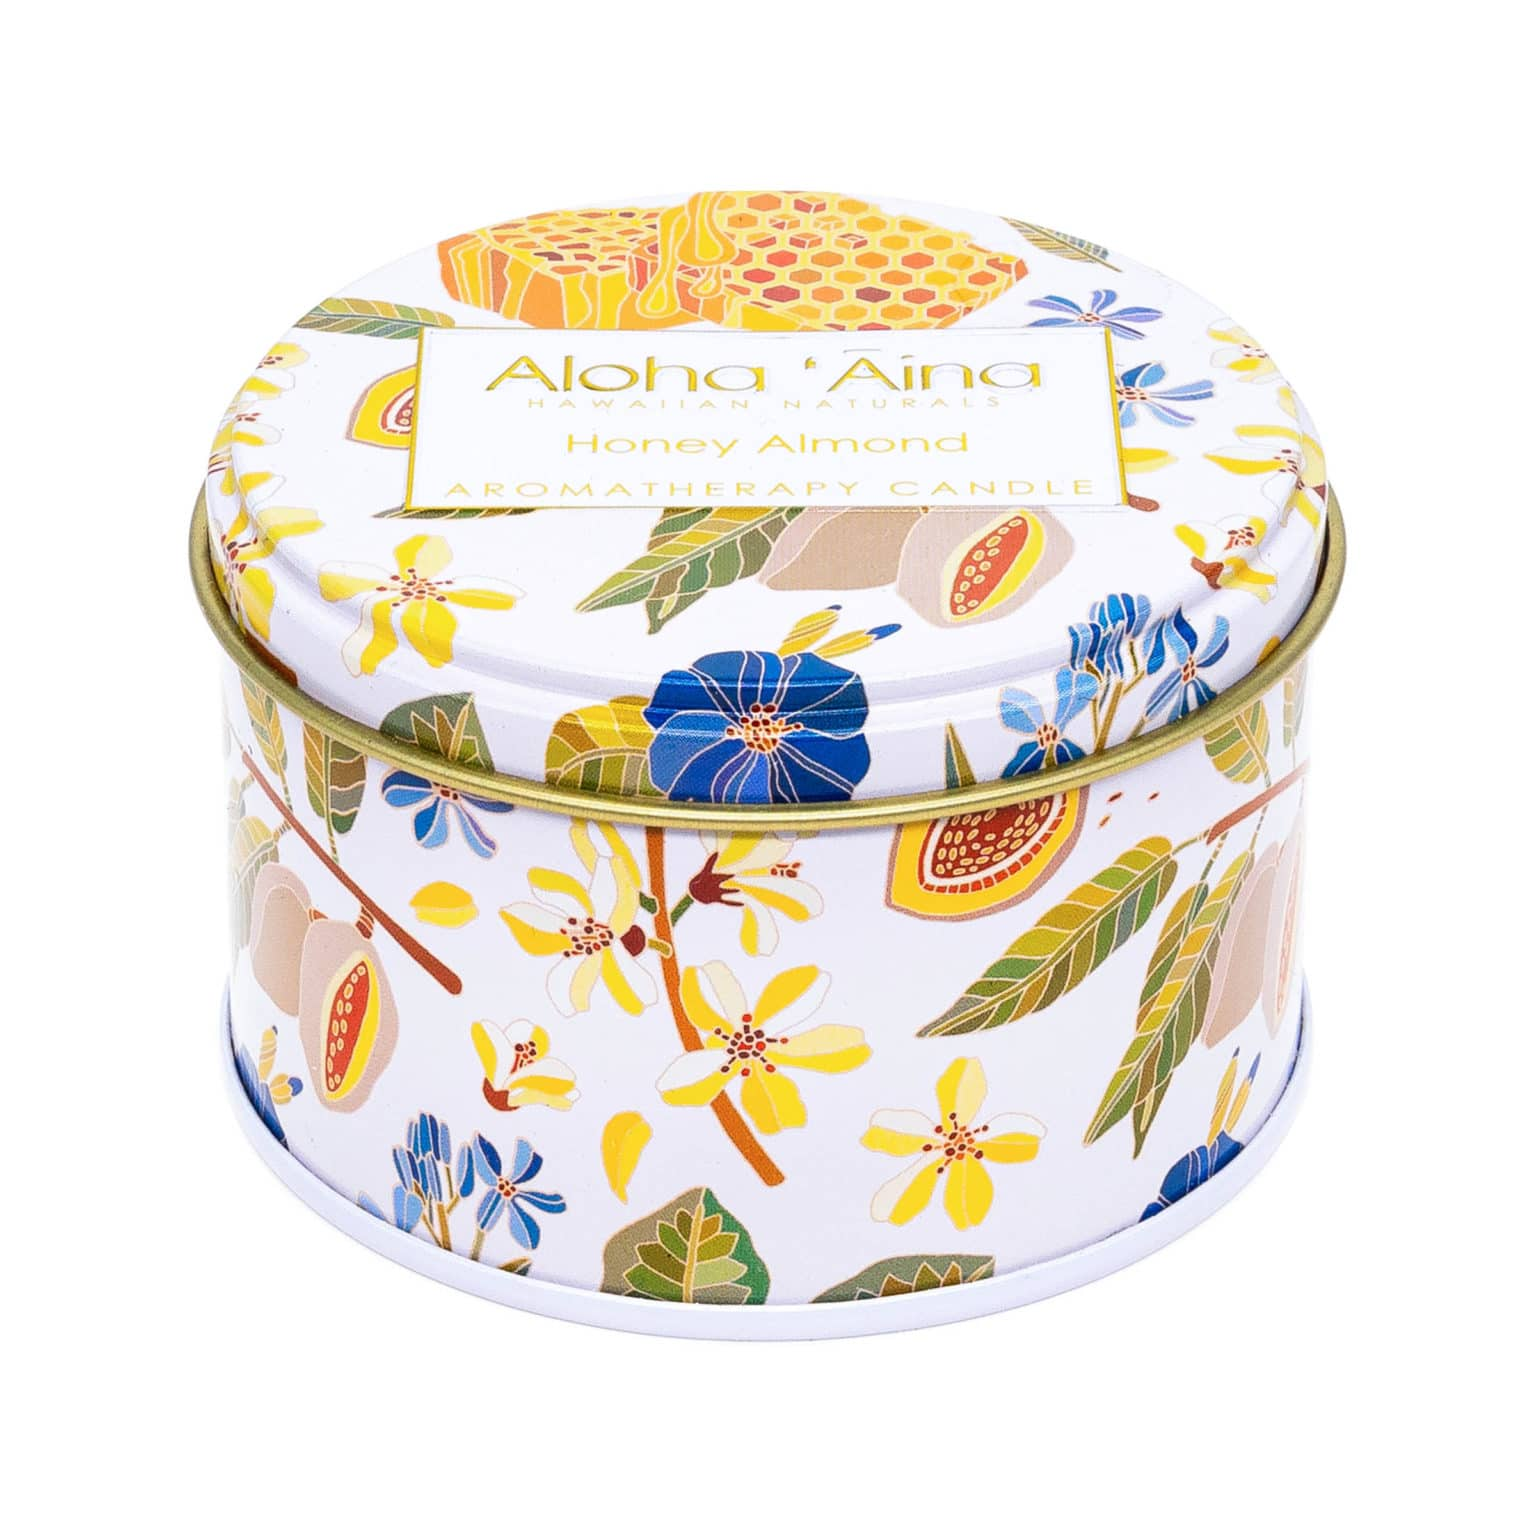 HONEY ALMOND FRONT CANDLE